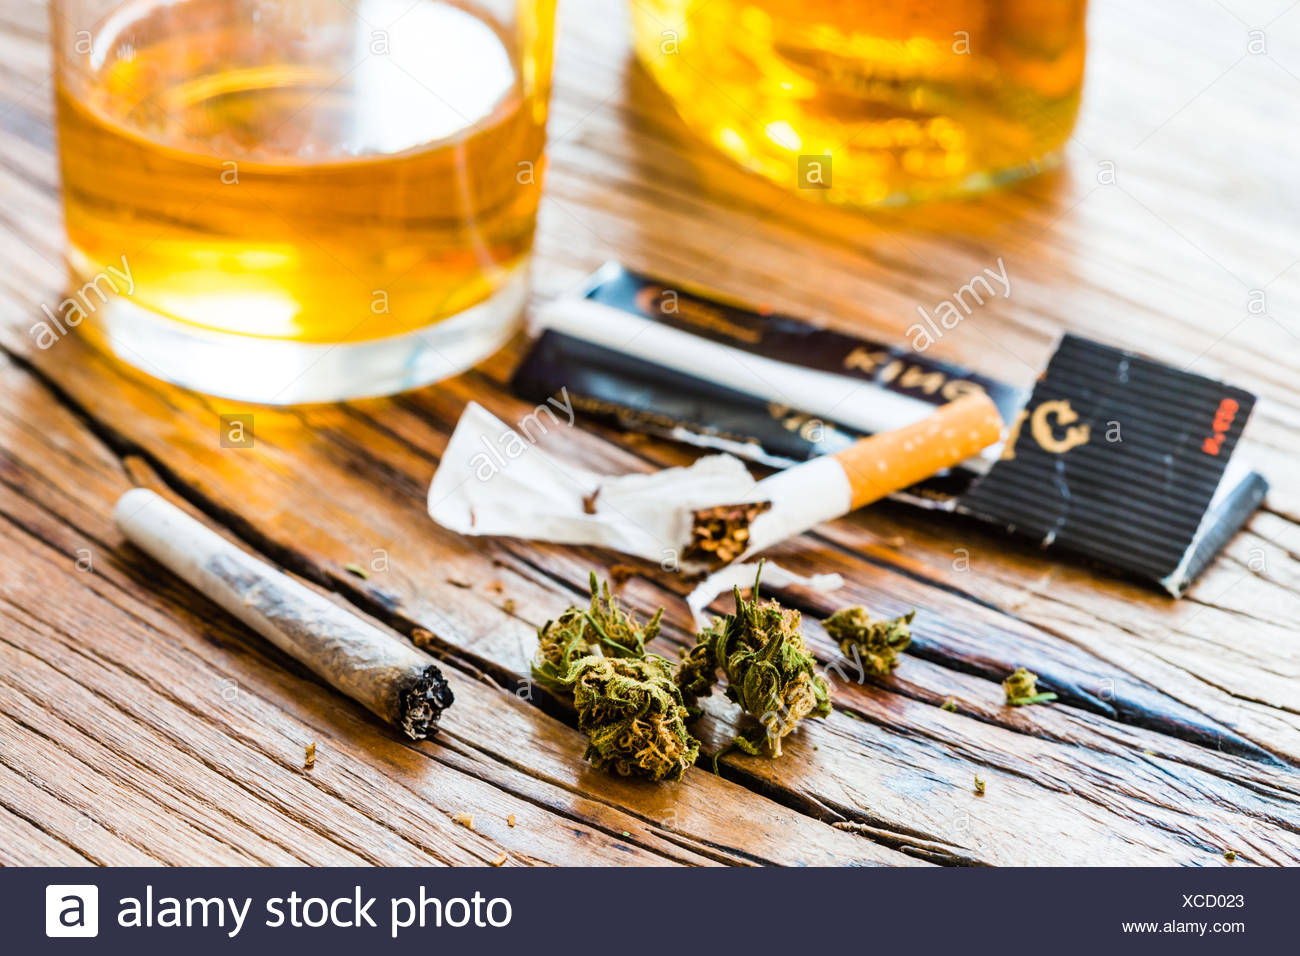 Cannabis and alcohol. - Stock Image